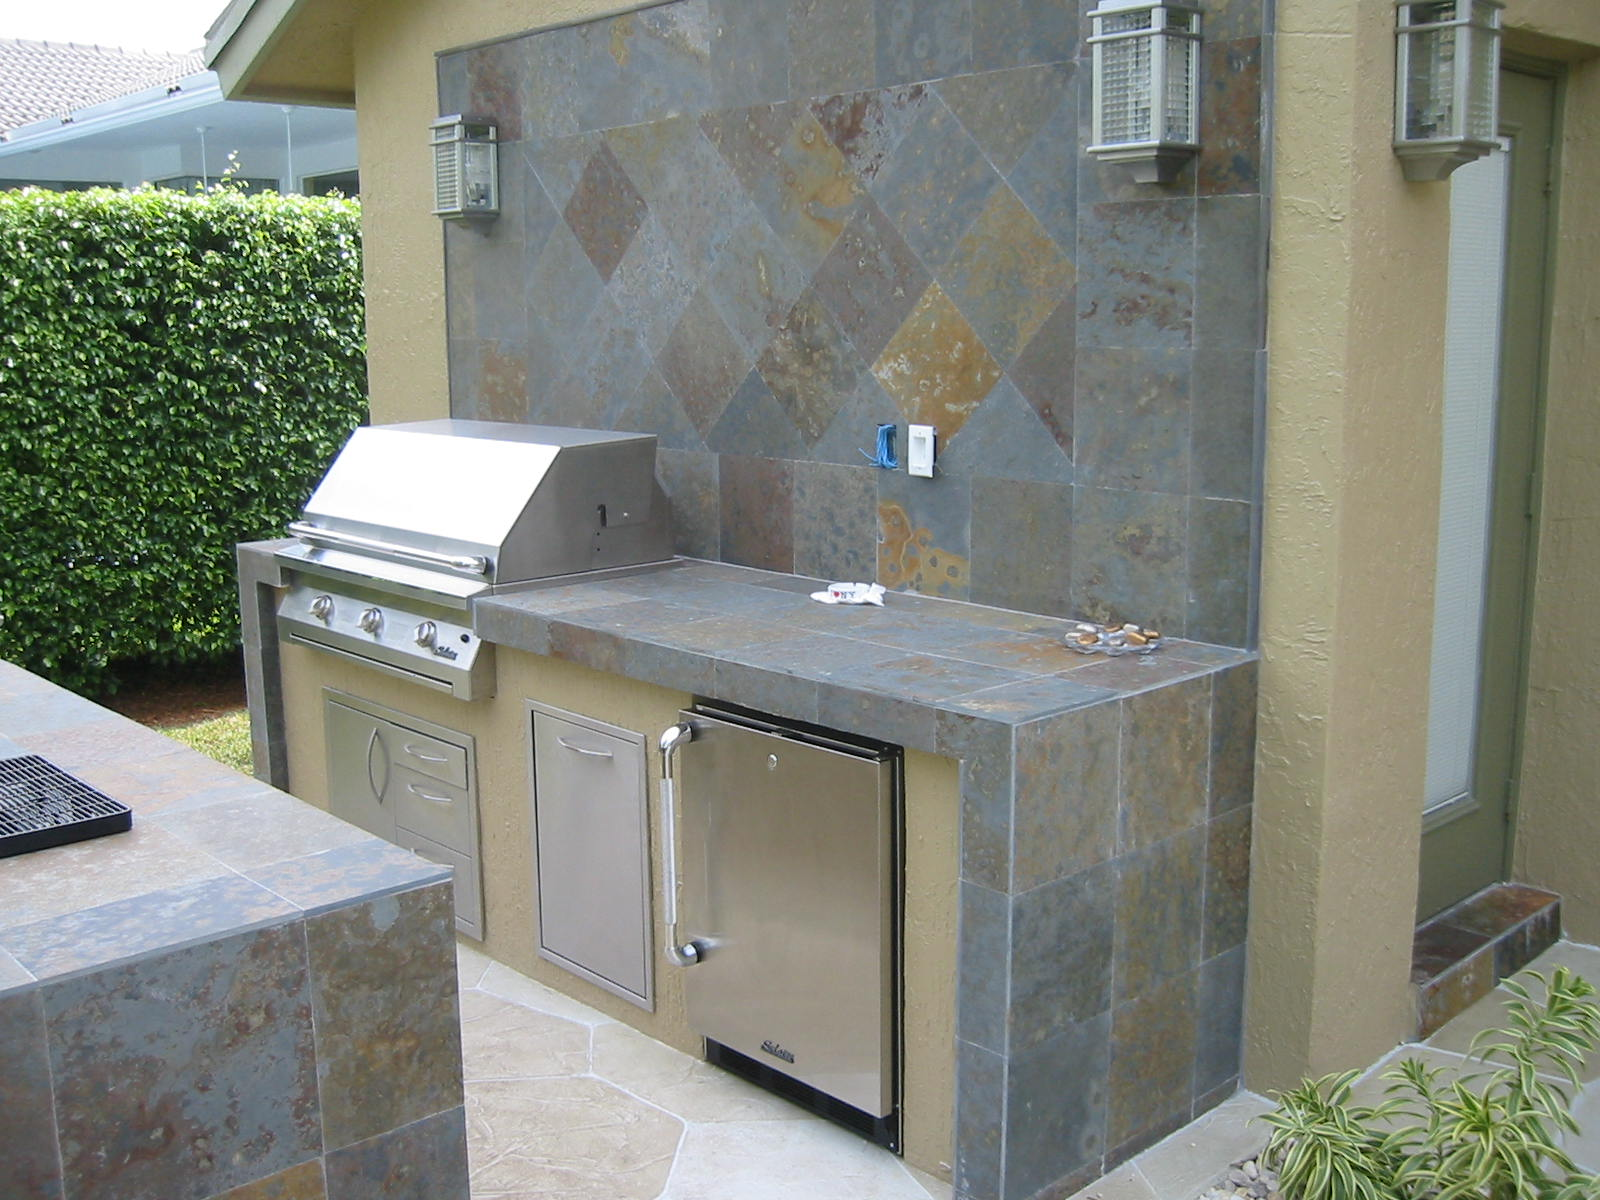 Custom outdoor kitchen with outdoor bar built in solaire infrared gas